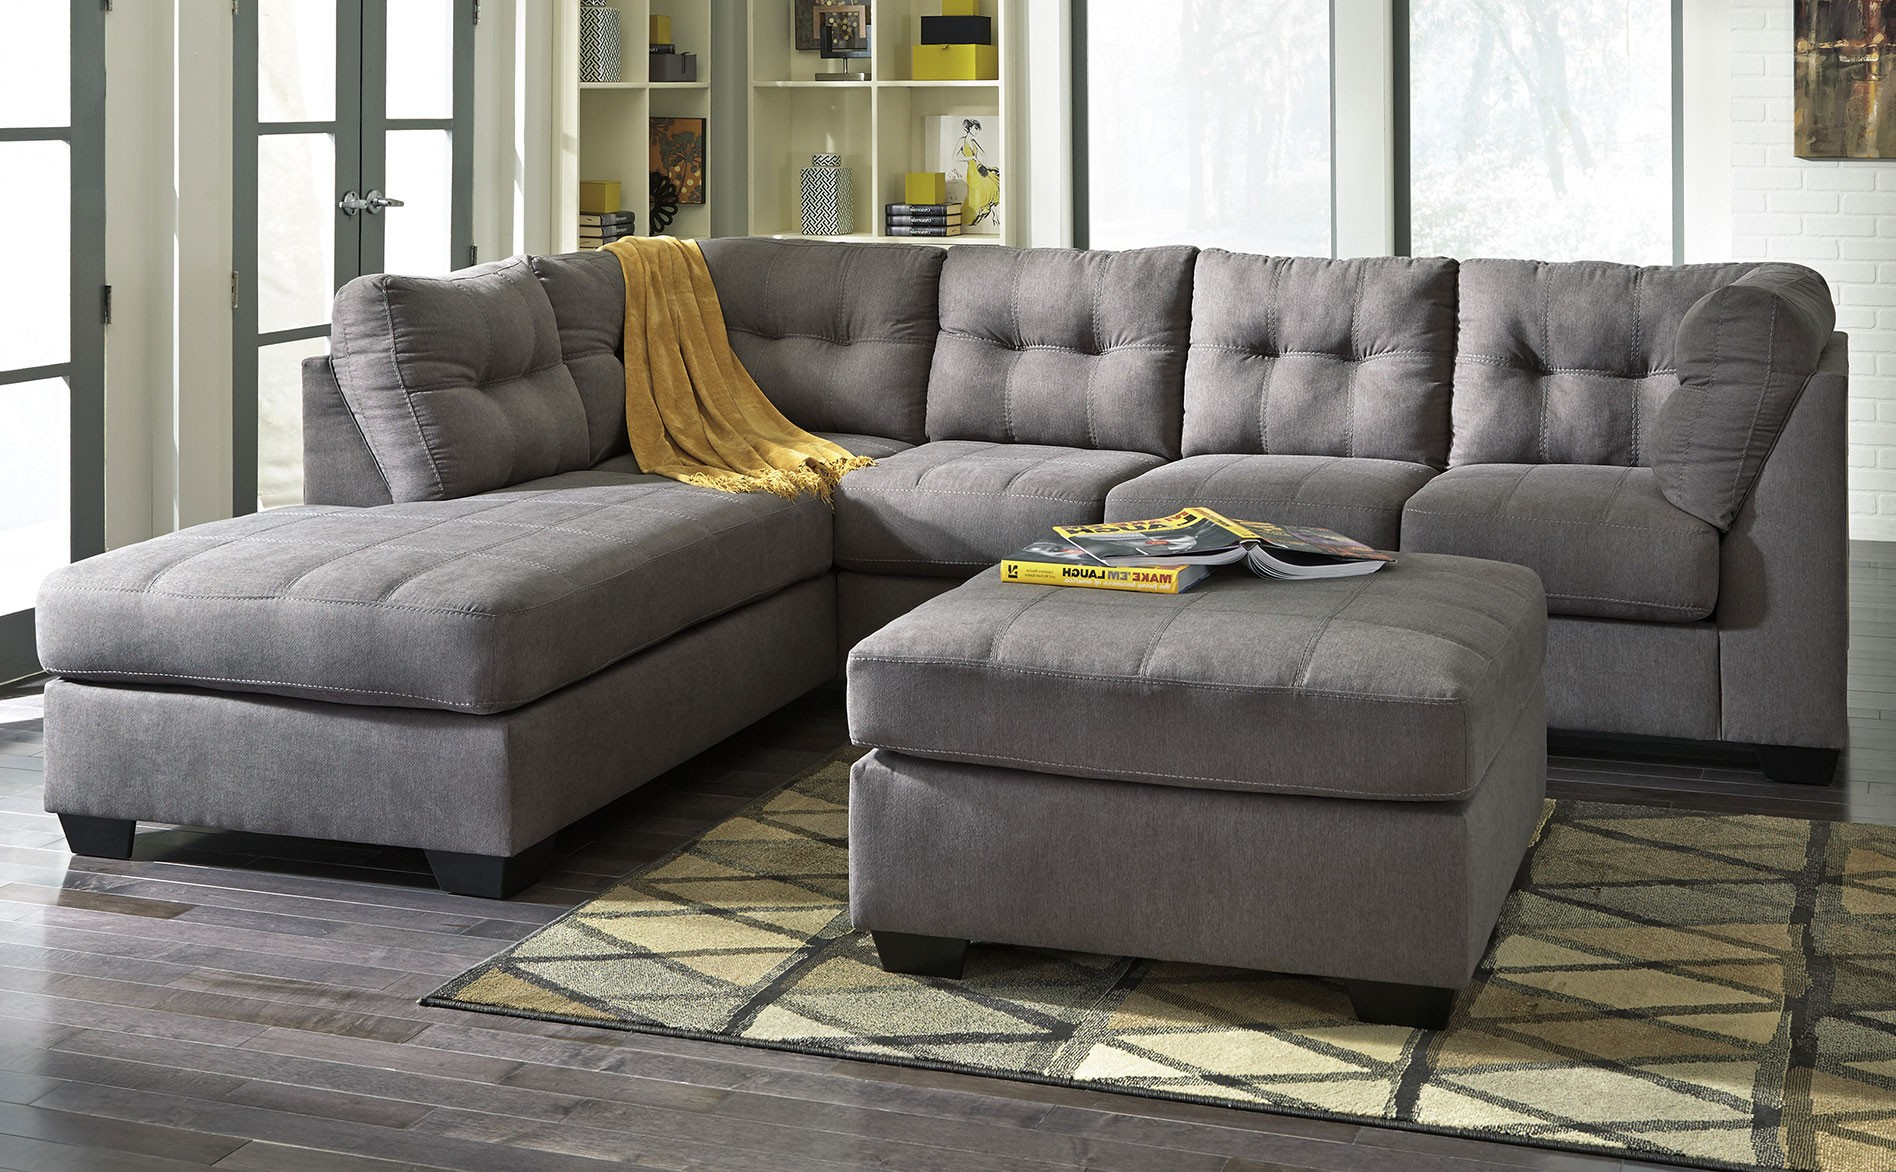 Sectionals Rental Rent To Own Furniture